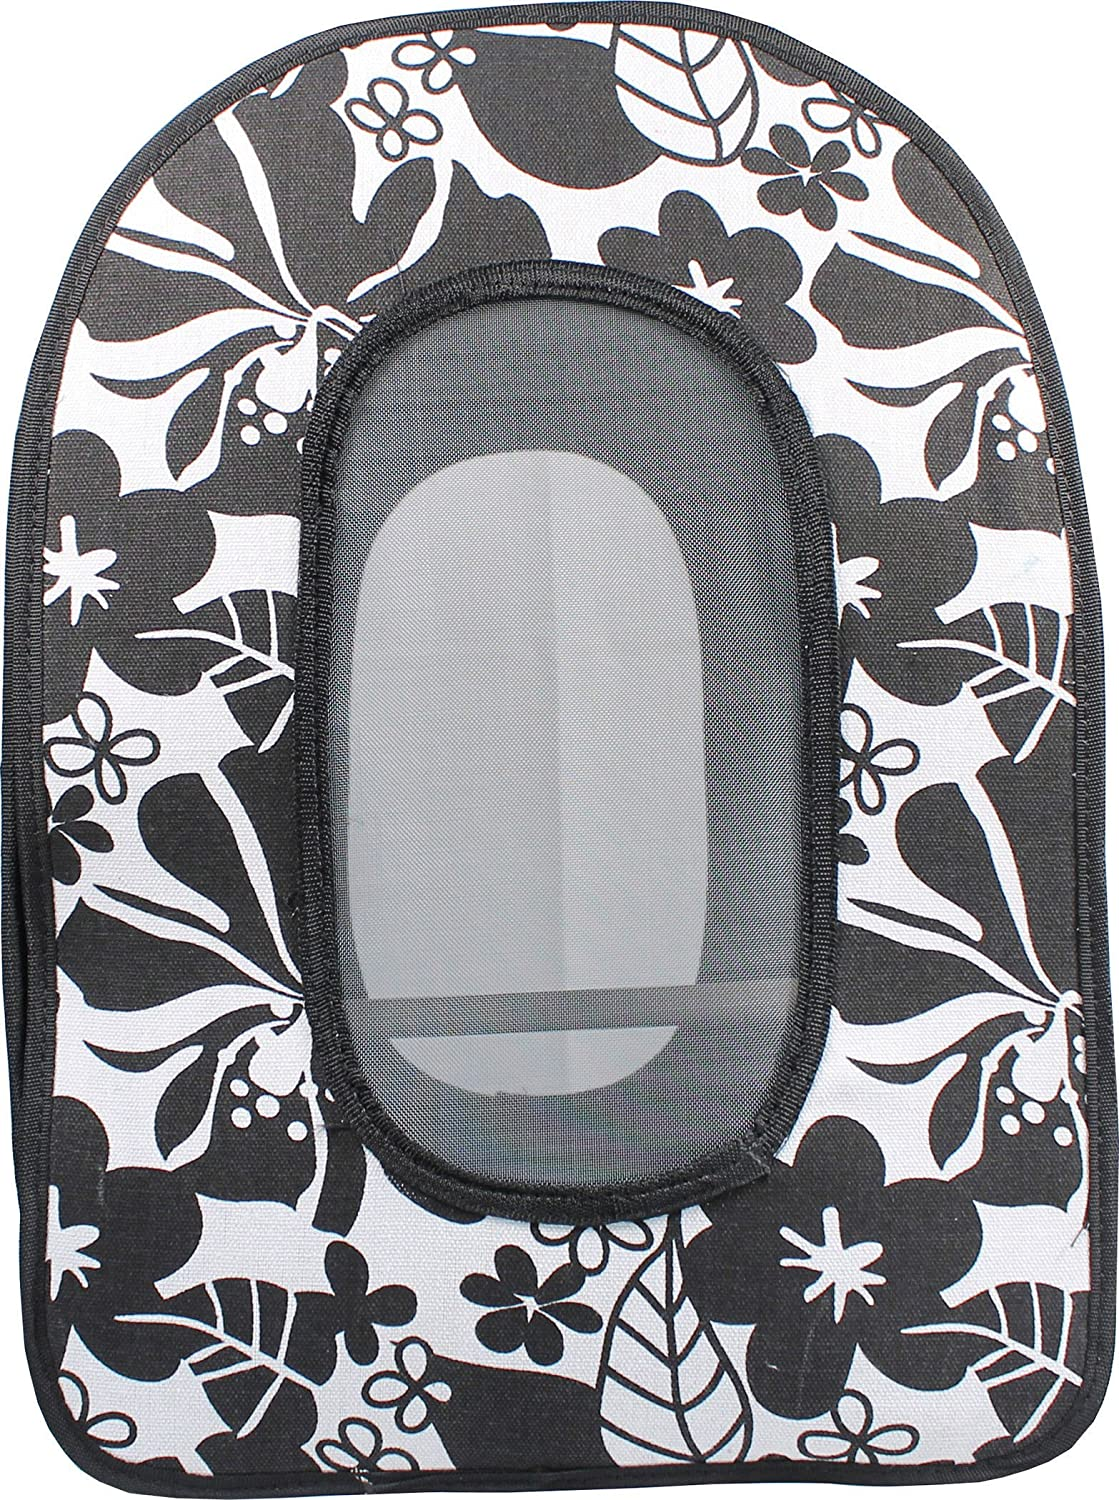 A&E CAGE COMPANY 001374 Black Happy Beaks Soft Sided Bird Travel Carrier, 13.5 x 9 x 18.5